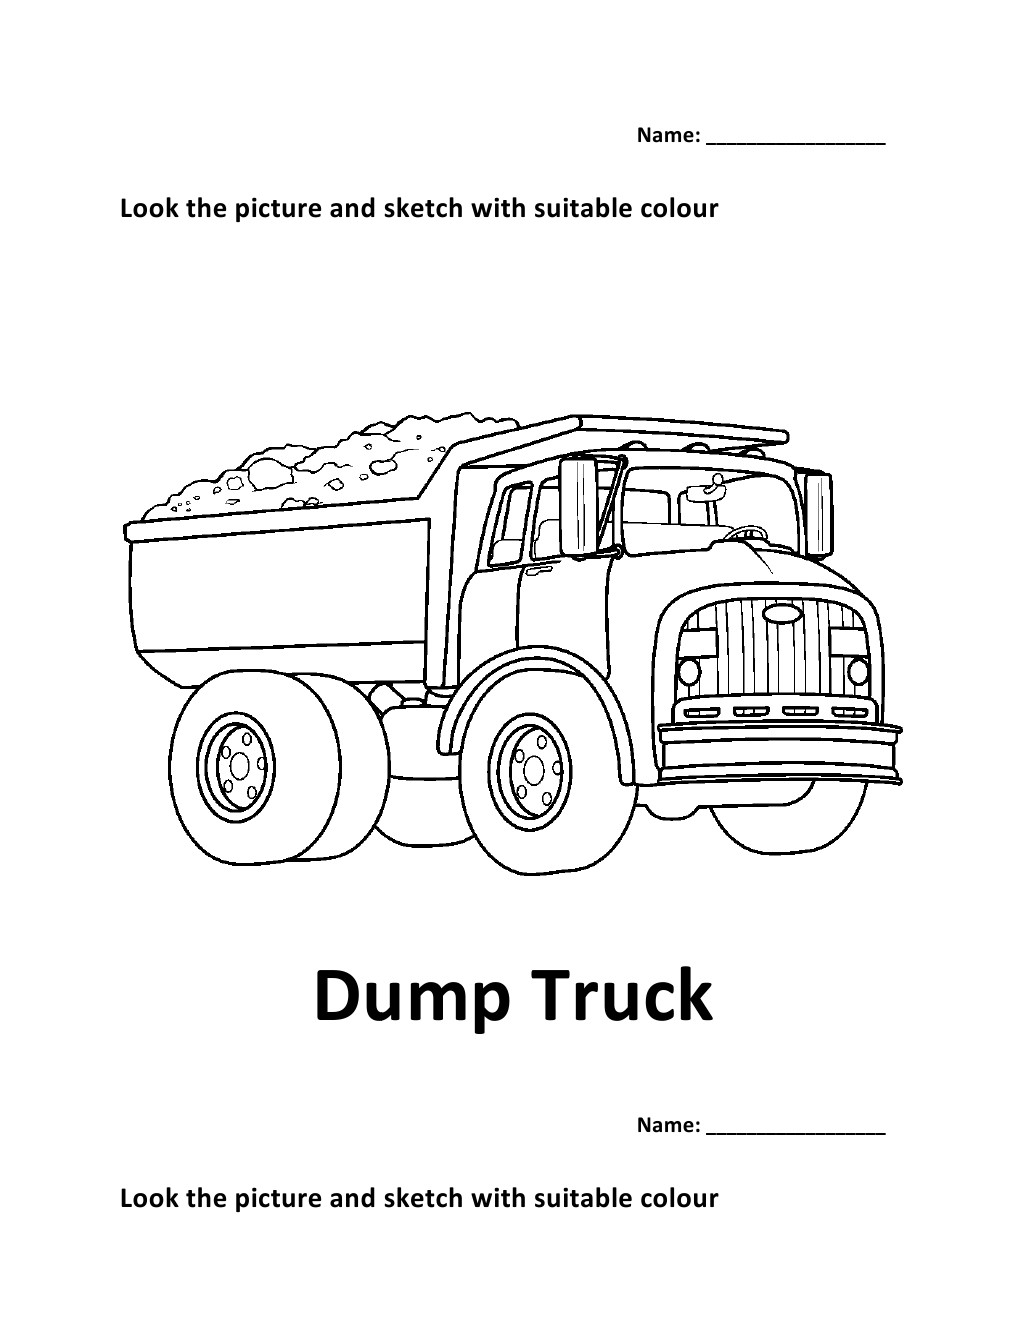 Colouring sheets for lkg - Colouring Worksheets For Lkg Vehicles Colouring Worksheet Dump Truck